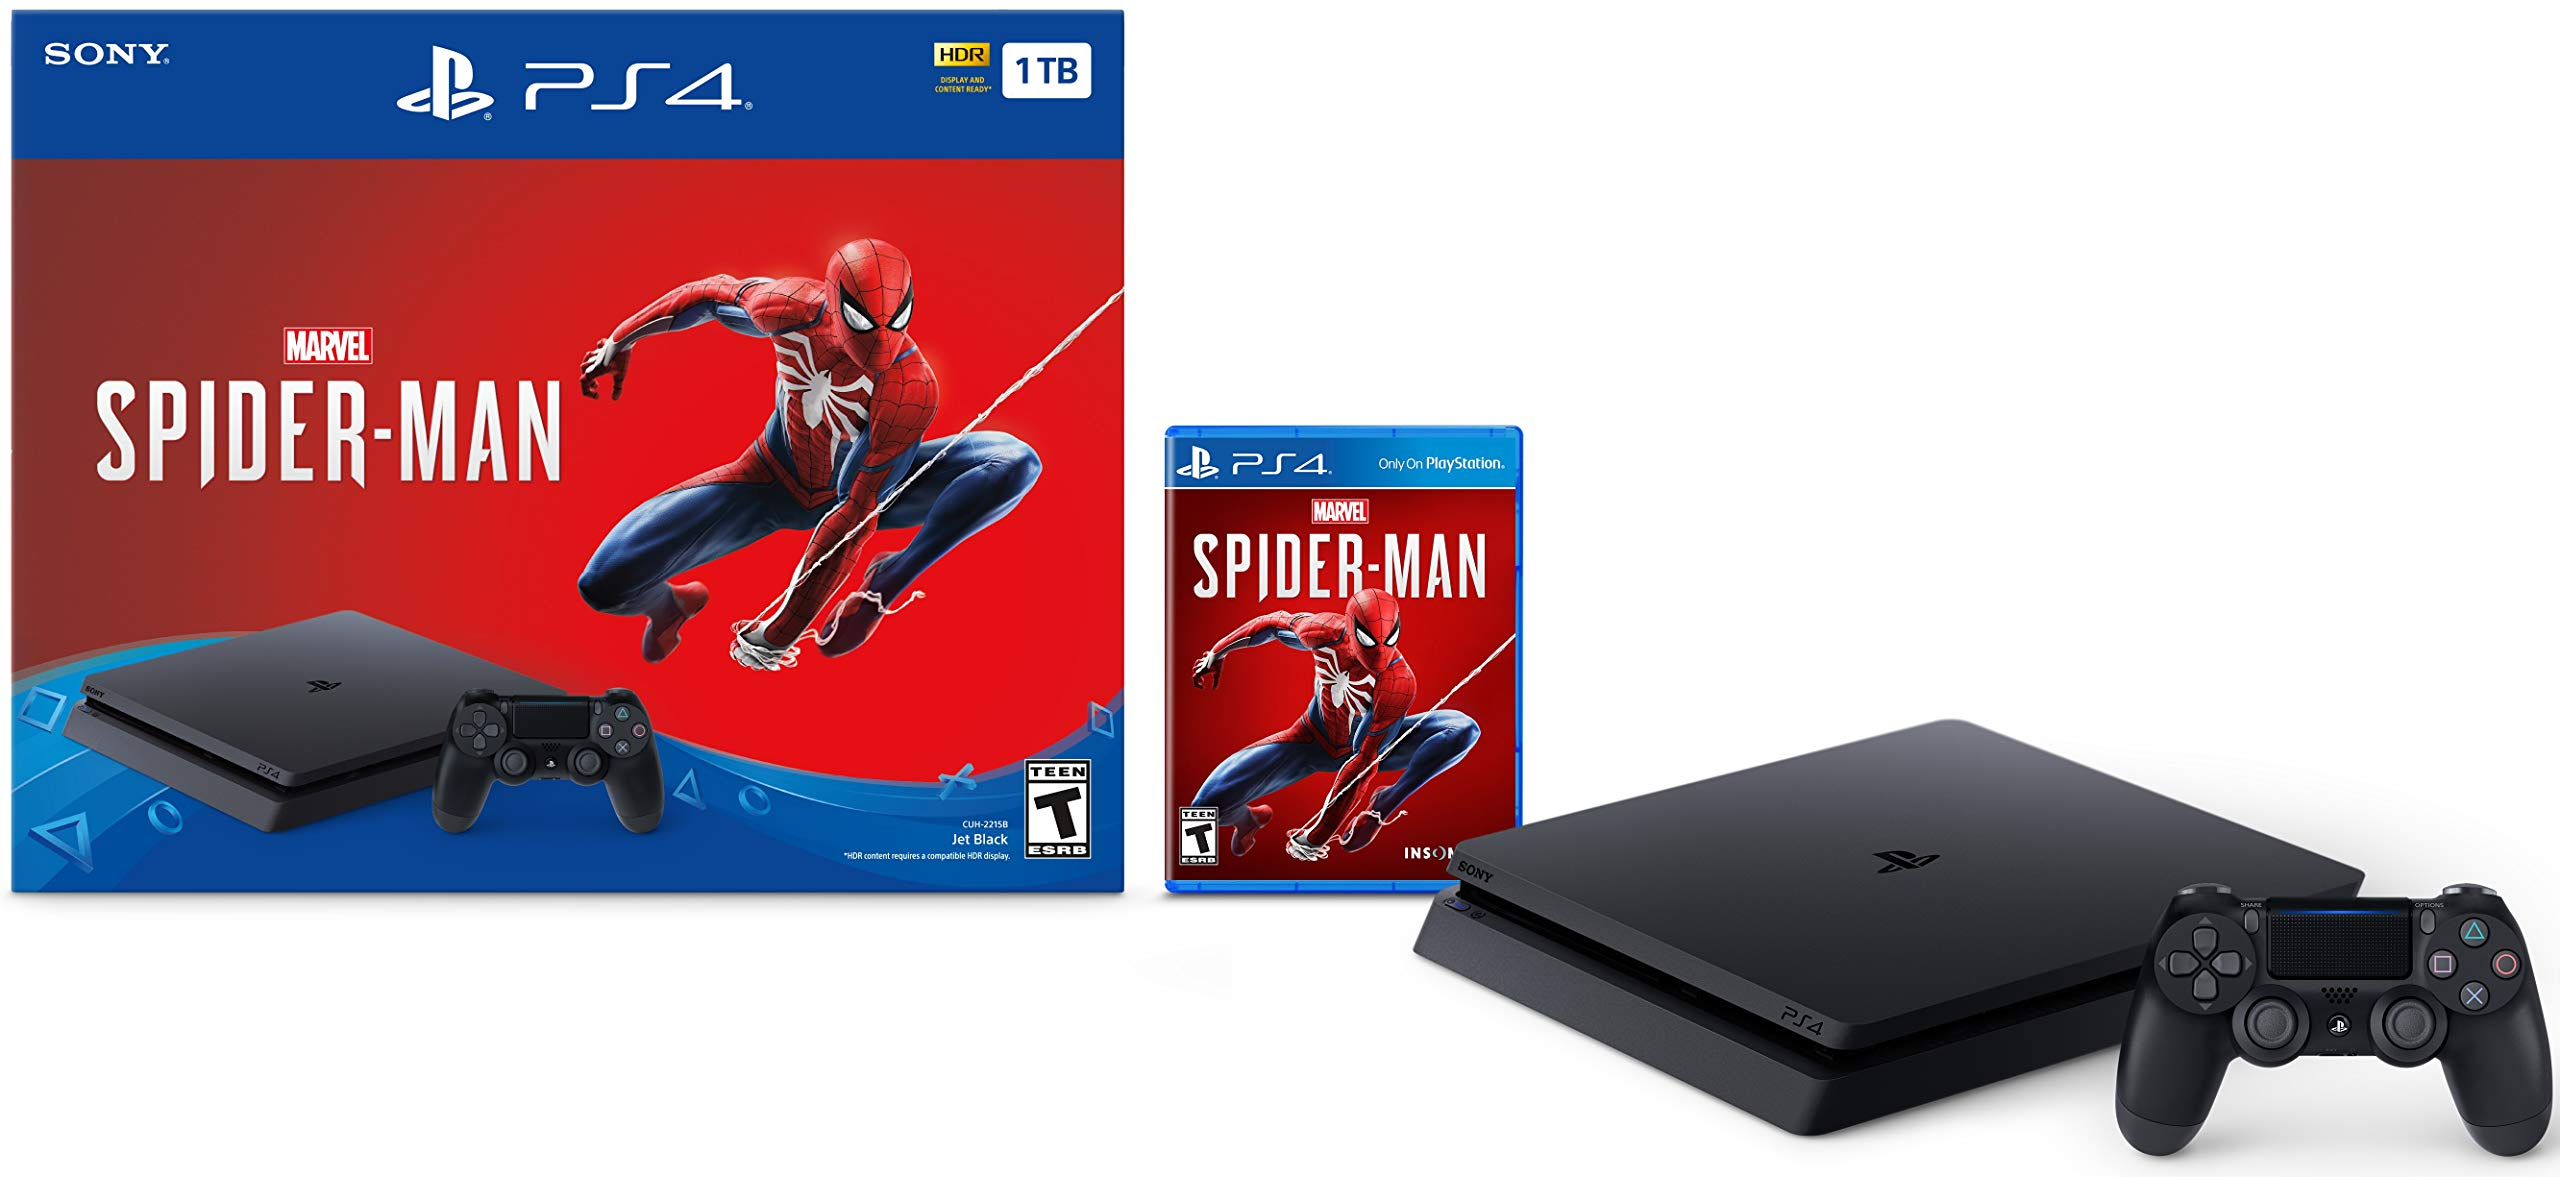 PlayStation 4 Slim 1TB Console - Marvel's Spider-Man Bundle - 711xGPcLL2L - PlayStation 4 Slim 1TB Console – Marvel's Spider-Man Bundle [Discontinued]